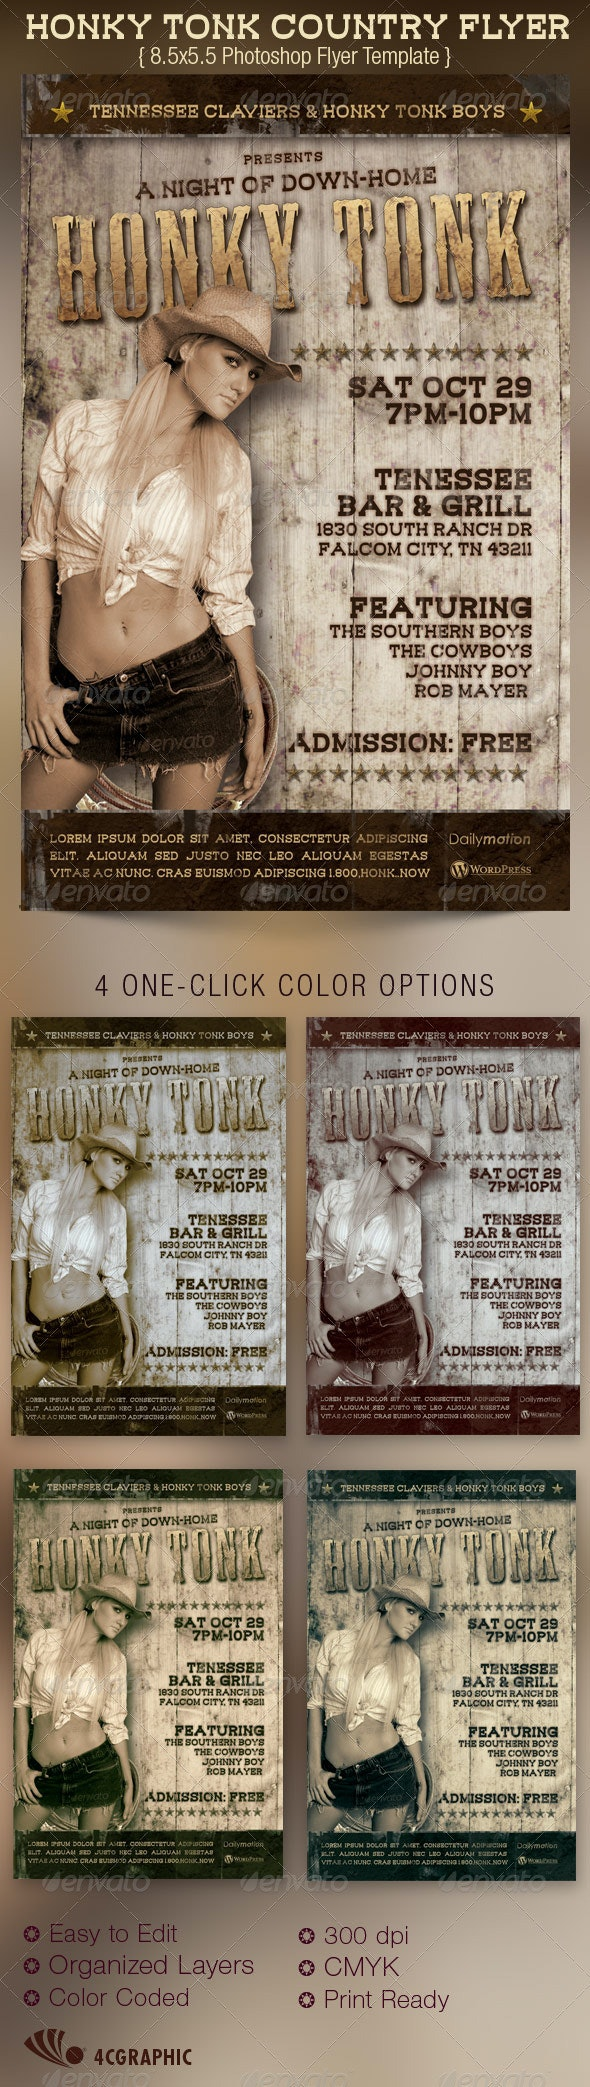 Honky Tonk Country Flyer Template - Clubs & Parties Events